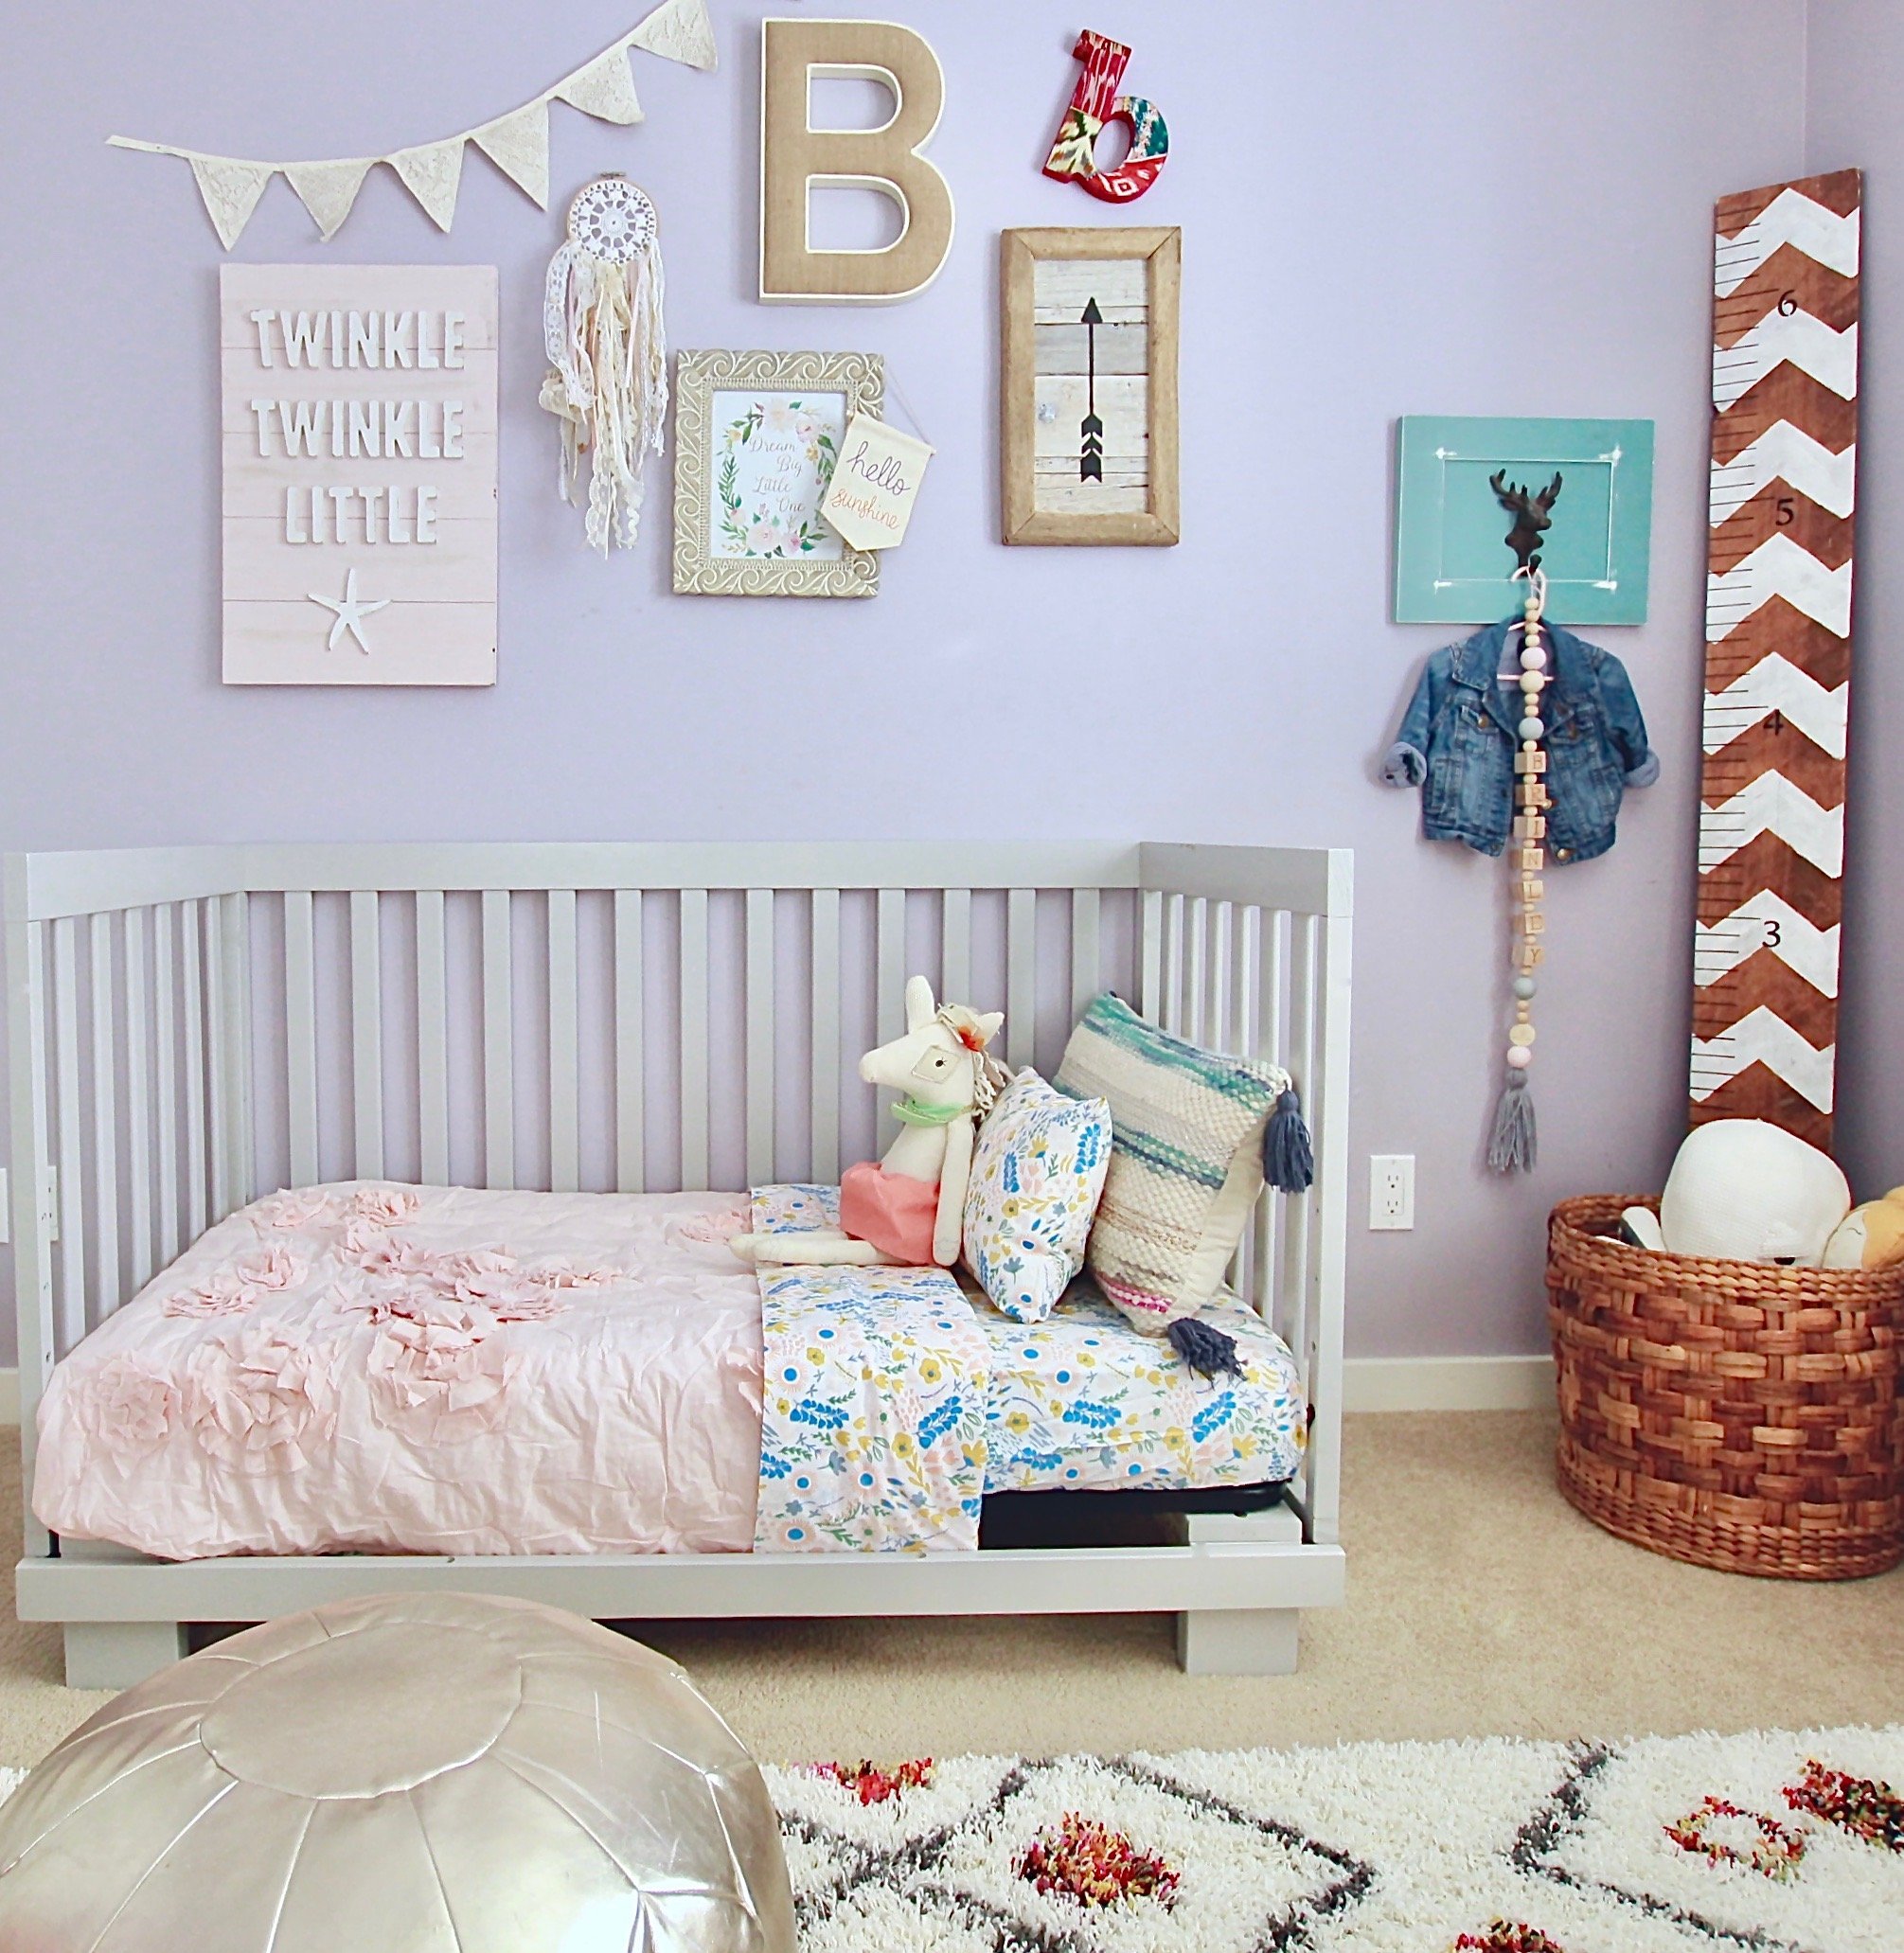 Floral Rush, Our Little Girls Very Whimsical Big Girl Room, The land Of Nod www.whitepicketfarmhouse.com